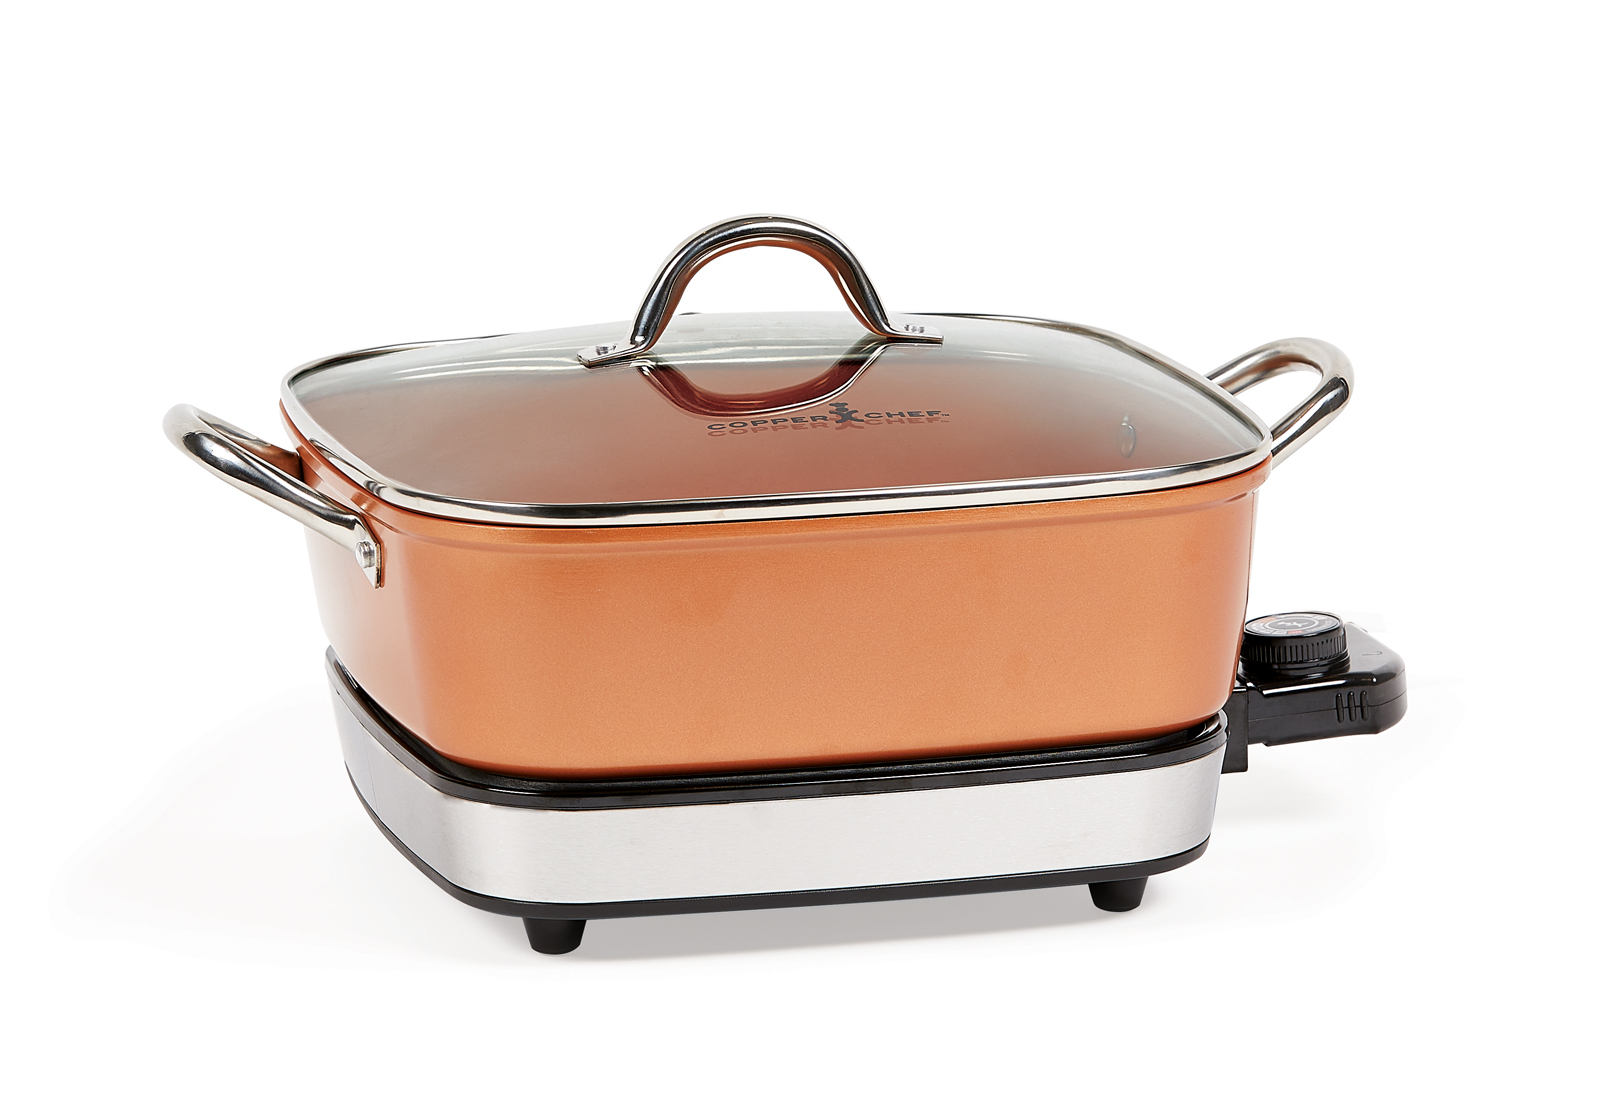 Copper Chef Removable Electric Deep Skillet Product Image